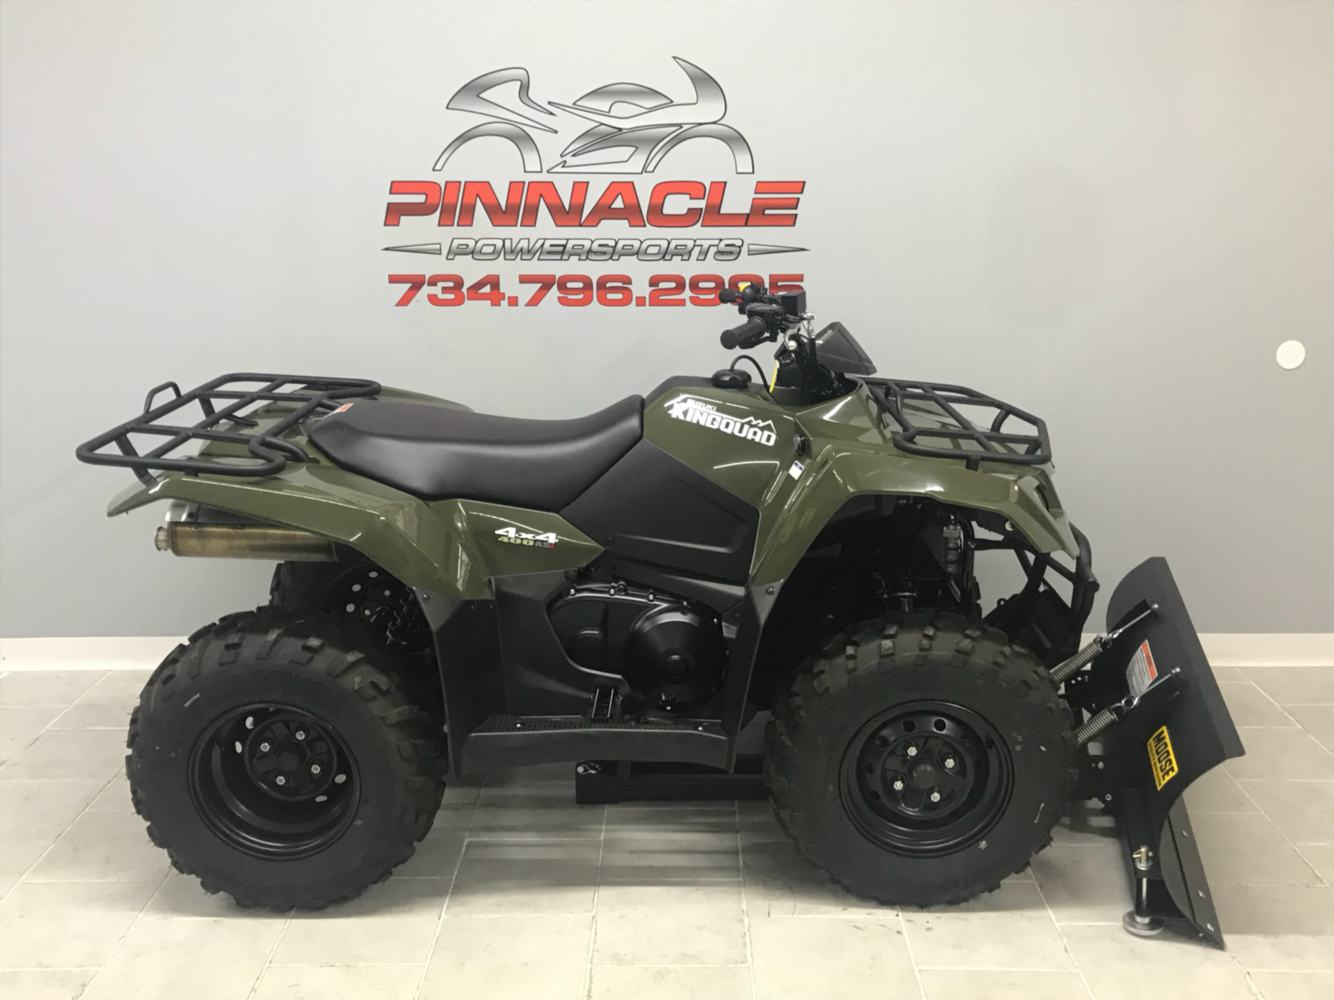 2019 Suzuki KingQuad 400ASi in Belleville, Michigan - Photo 5